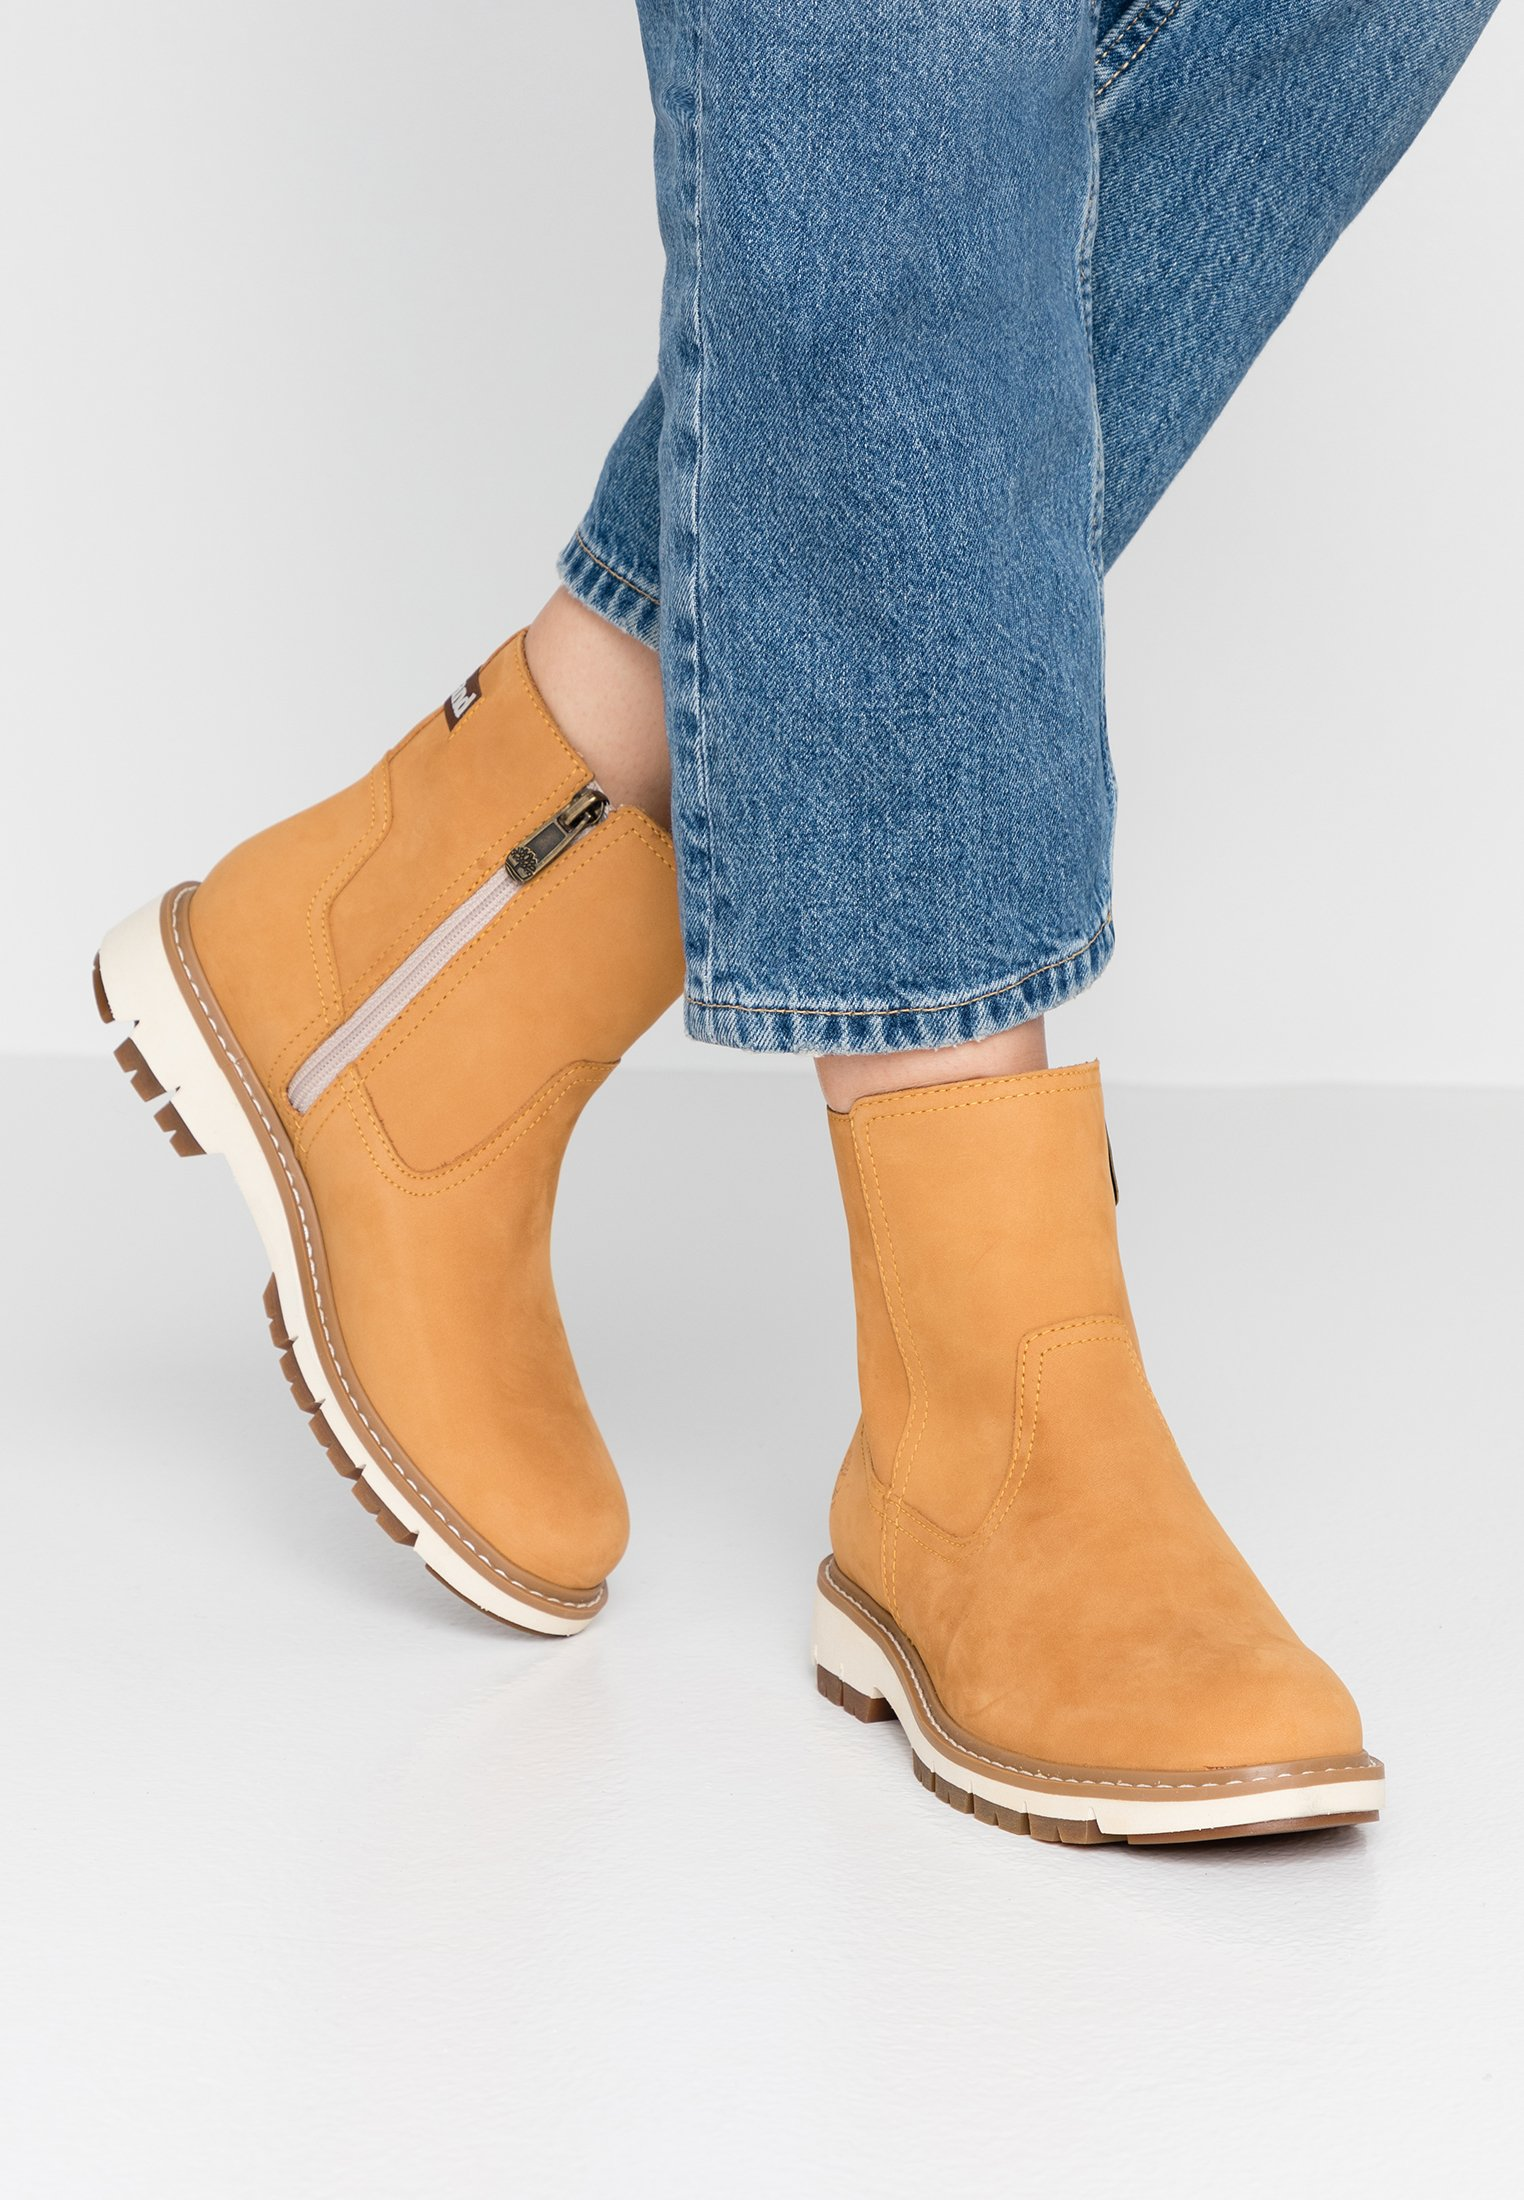 LUCIA WAY LOW BOOTIE Stiefelette wheat